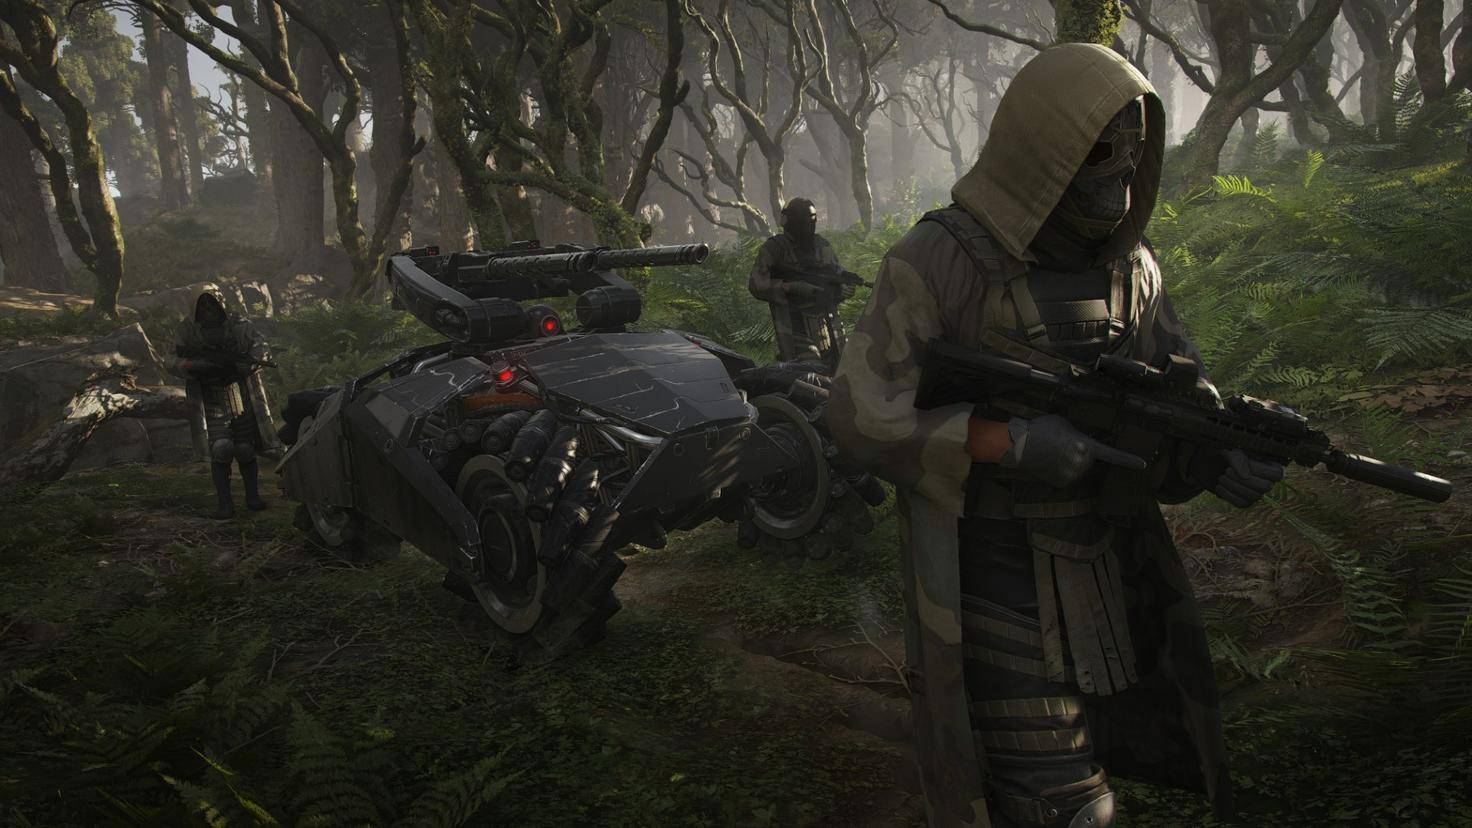 ghost-recon-breakpoint-wolves-screenshot